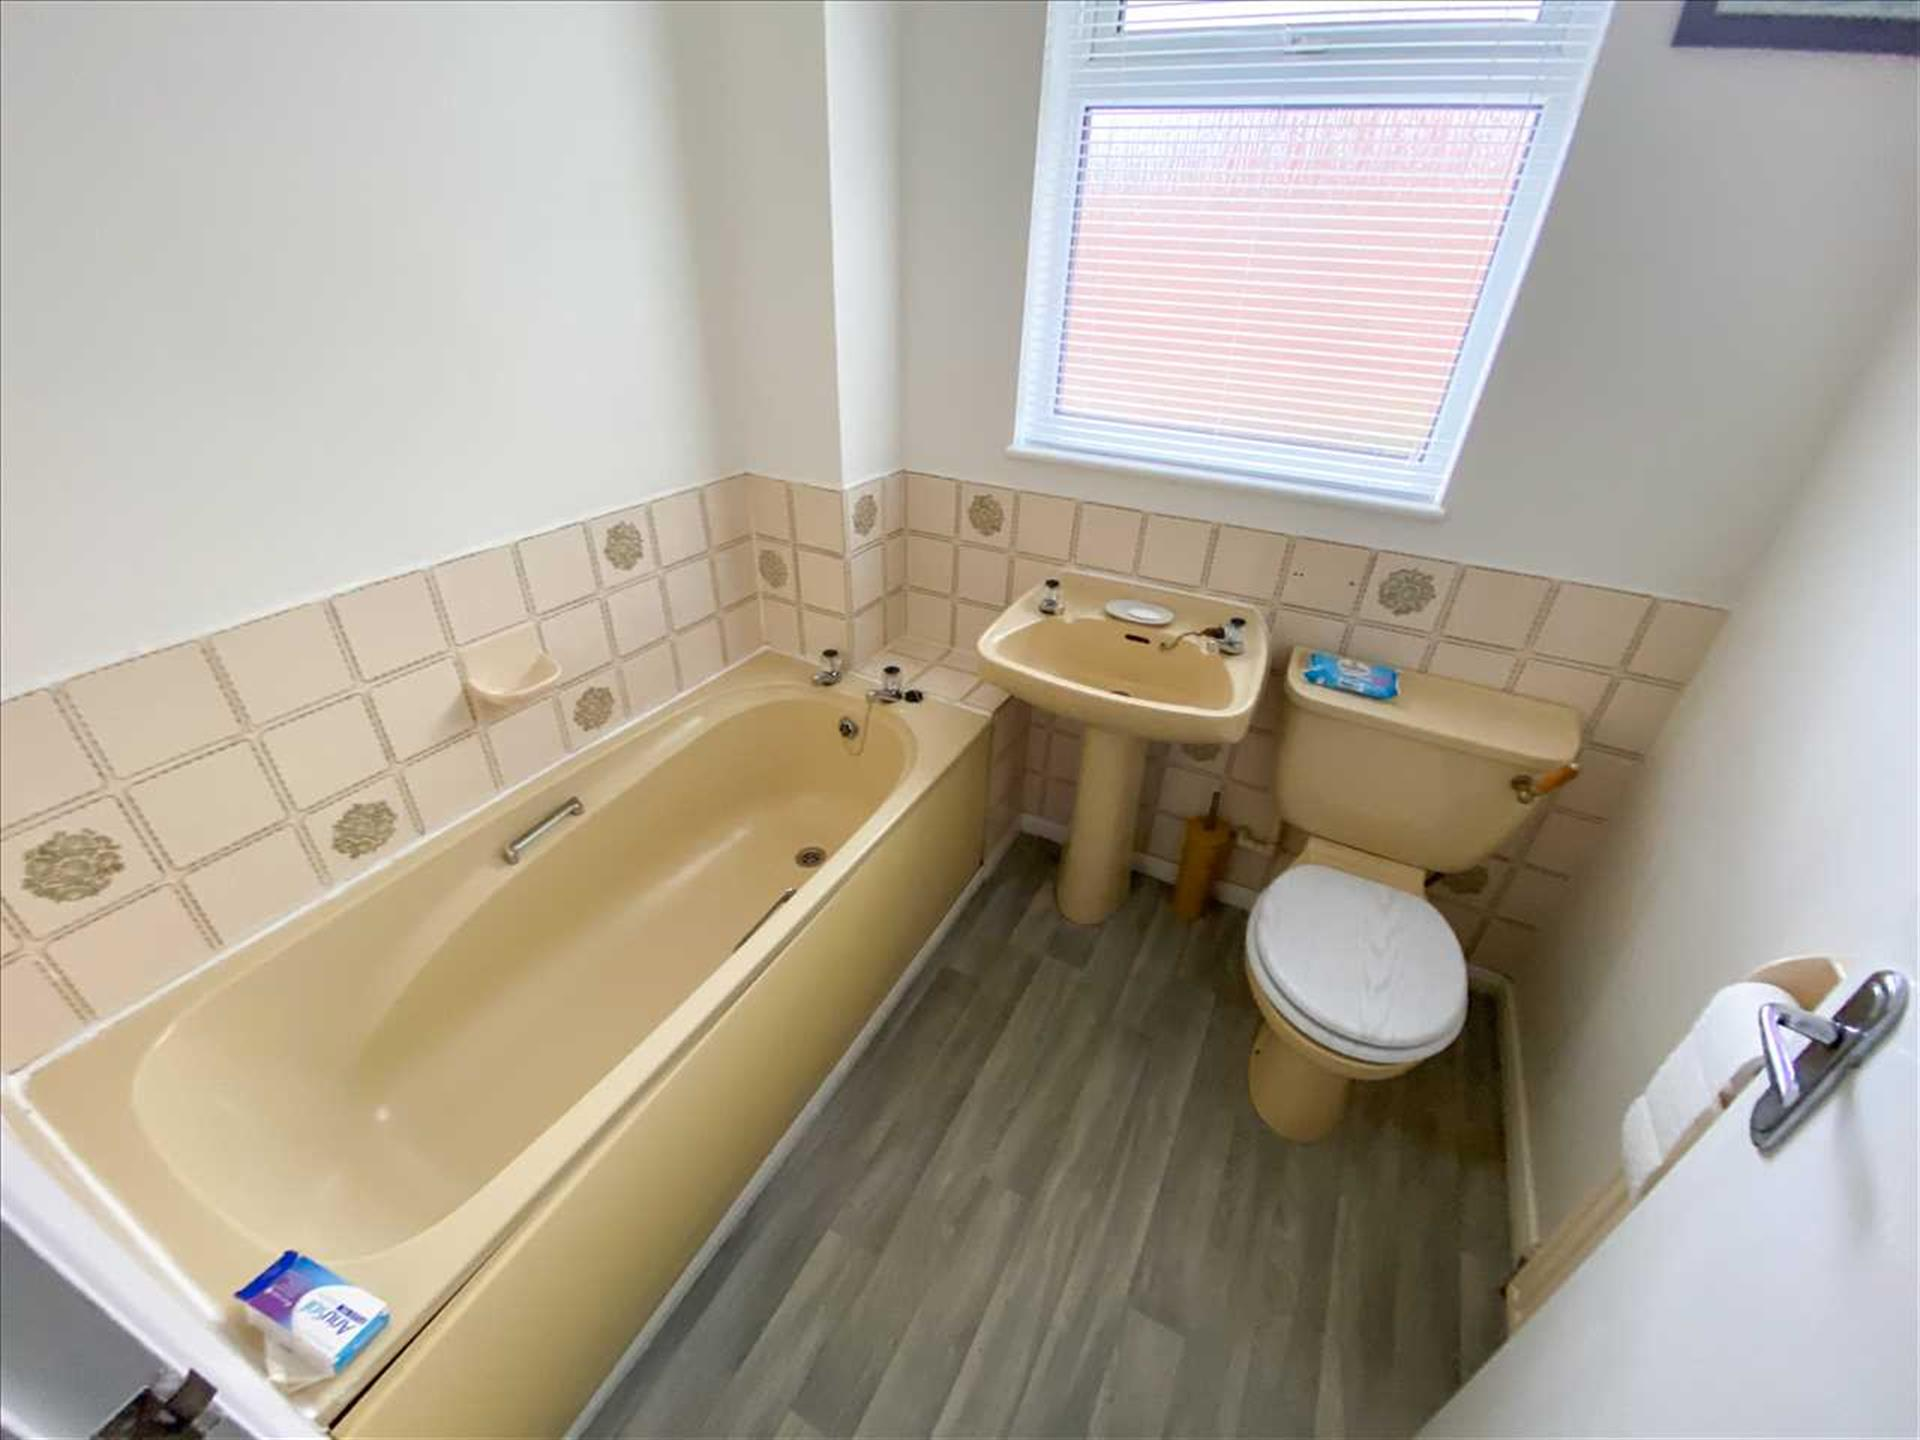 1 Bedroom Semi-detached House For Sale - Bathroom